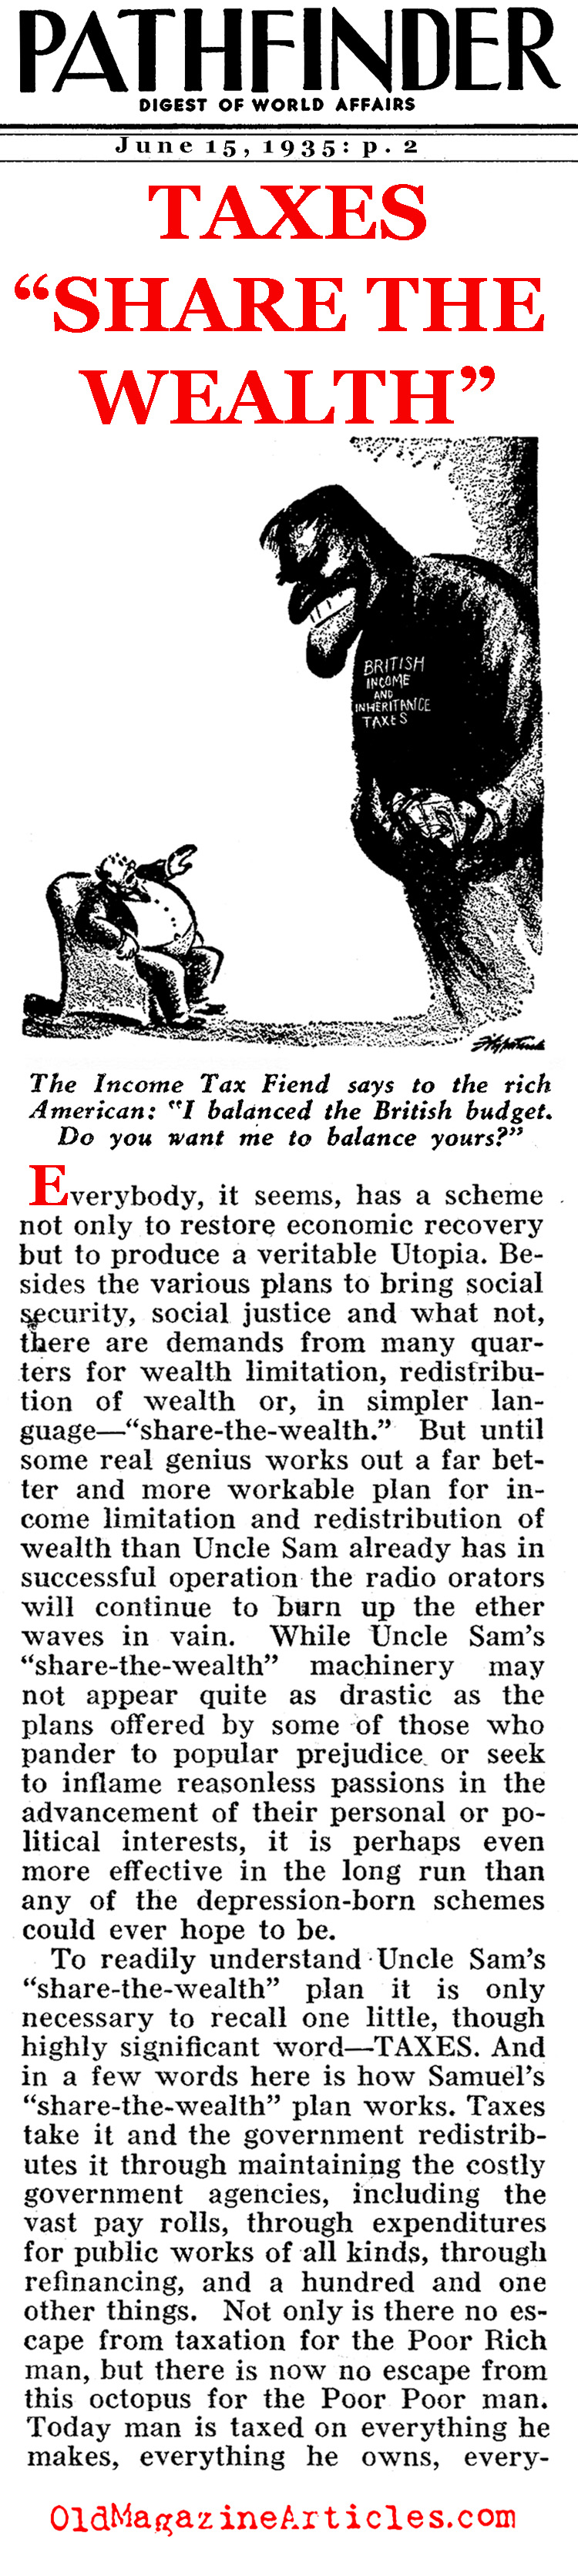 Distributing the Nation's Wealth... (Pathfinder Magazine, 1935)